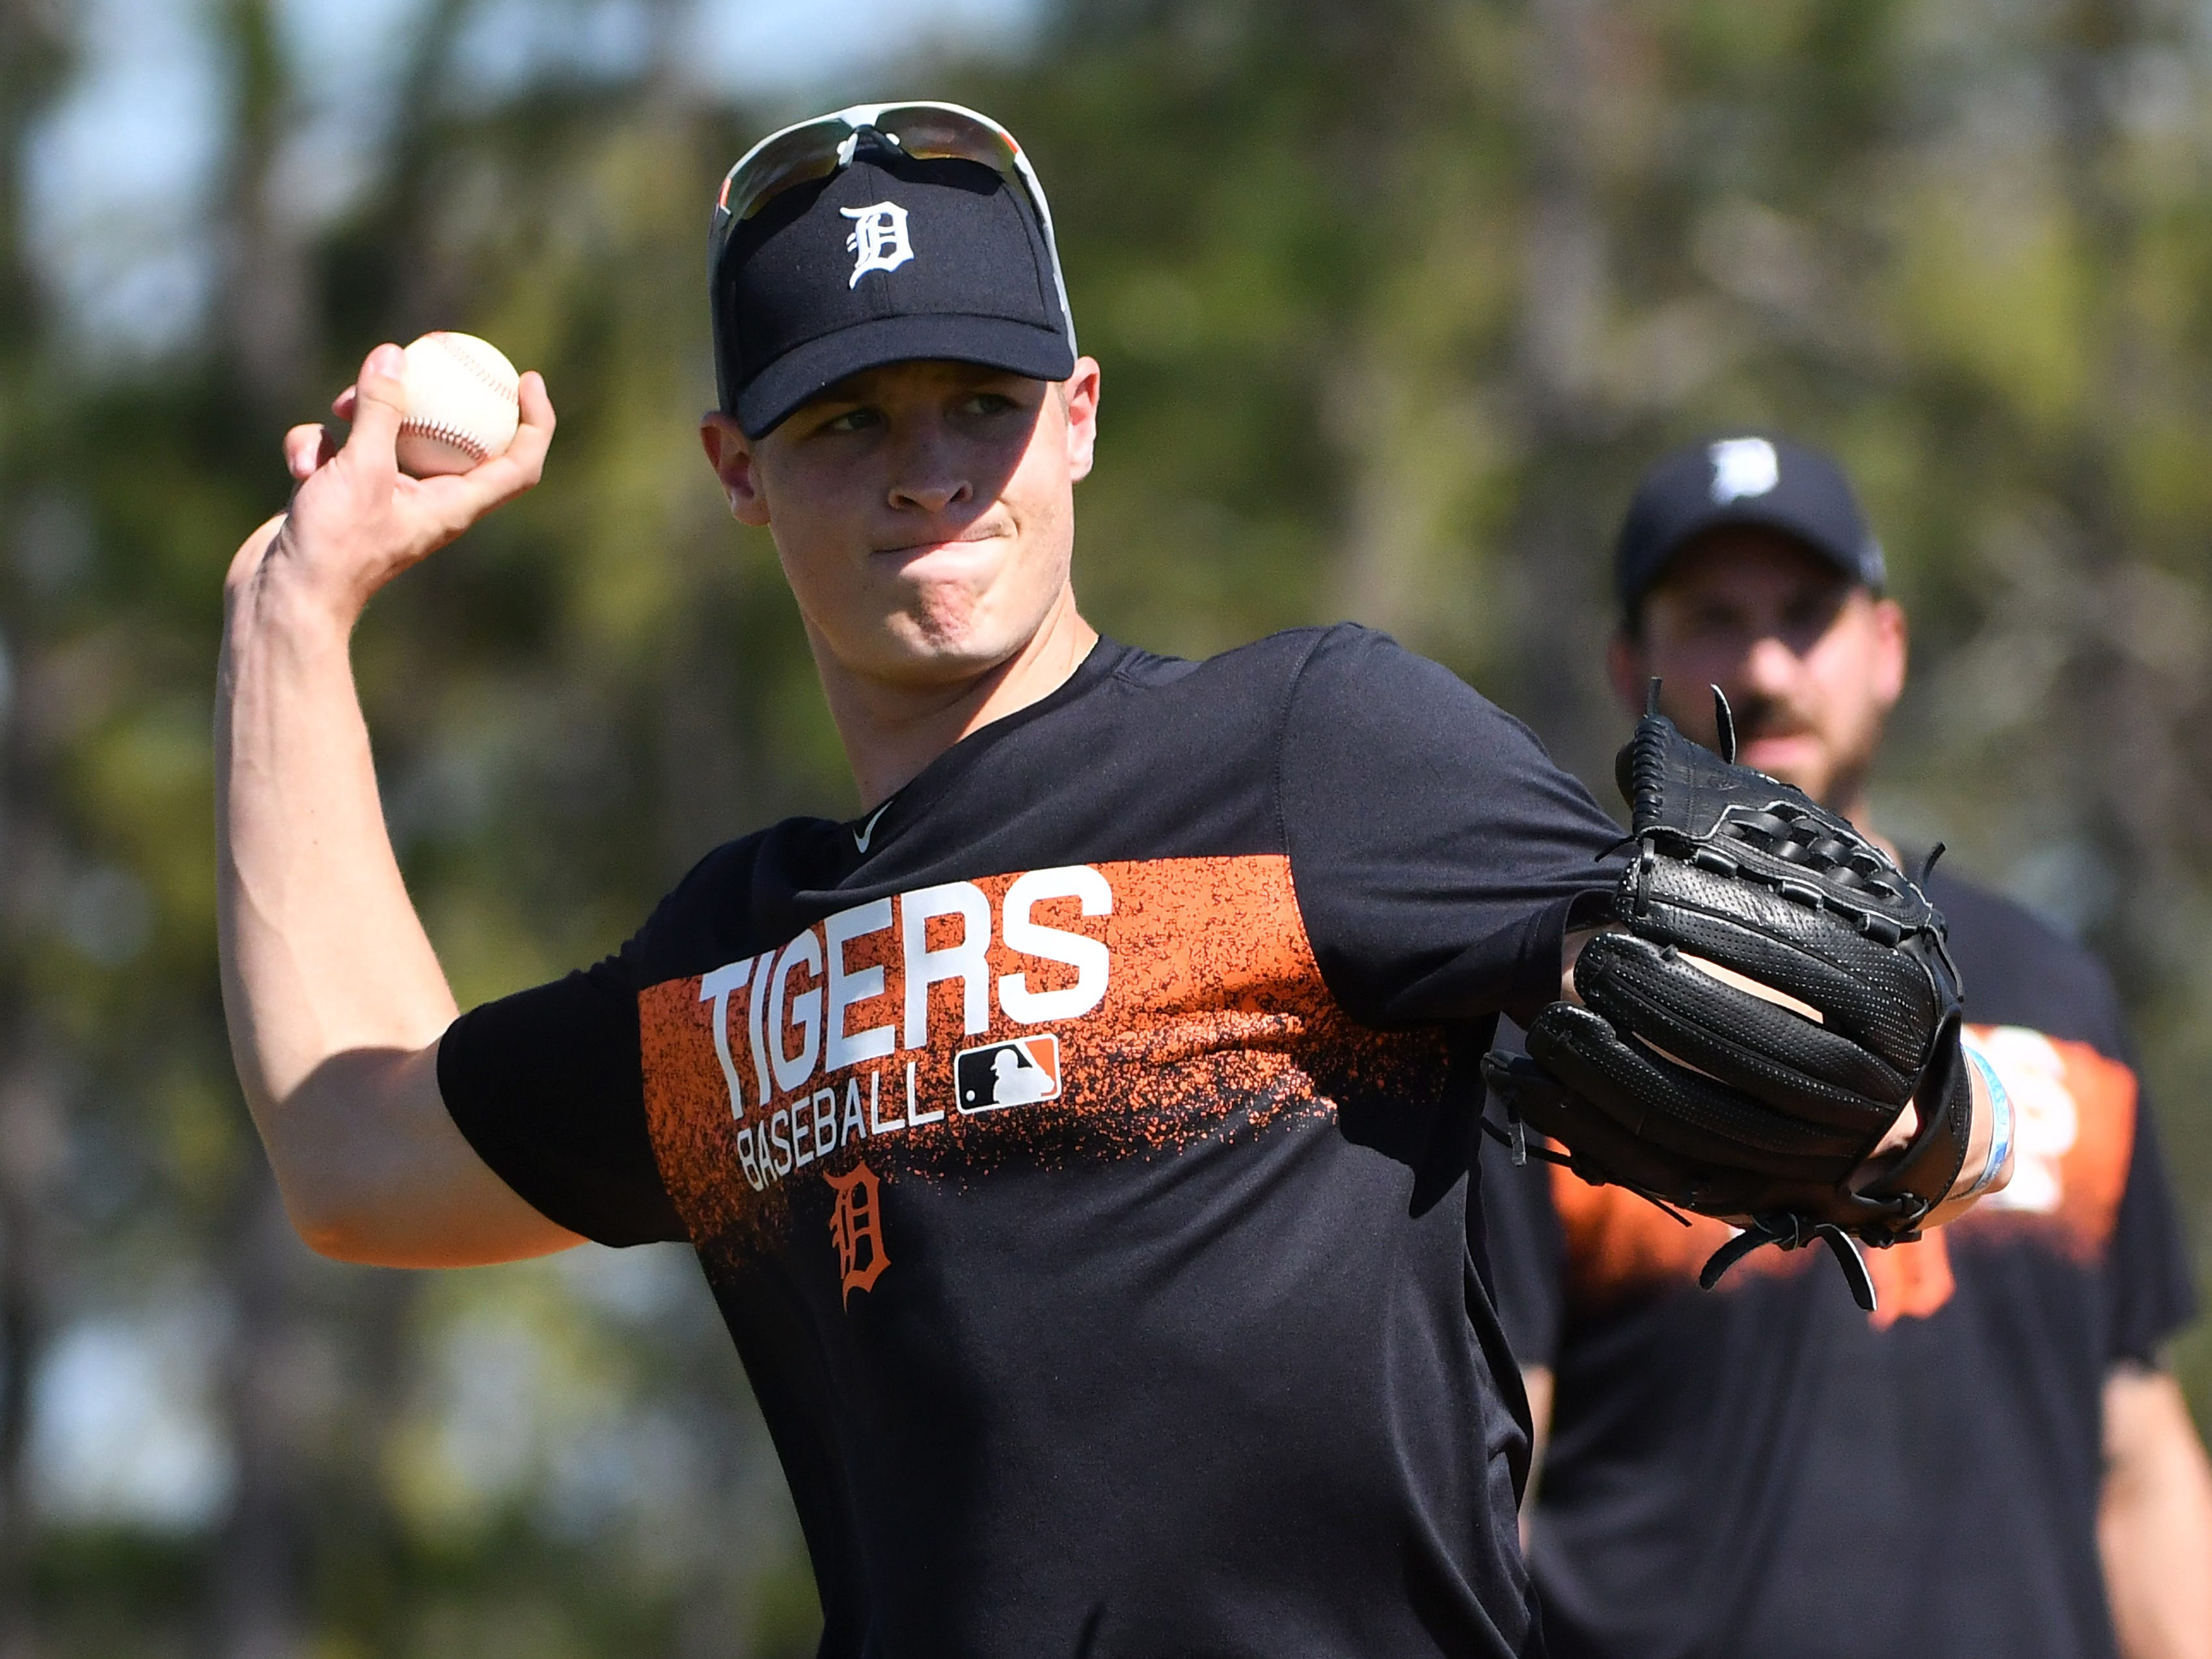 2. Matt Manning, RH starter, 21, 6-6, 190: Credit the Tigers scouts on this call. It's gutsy to take a prep pitcher, having no more experience than Manning had in 2016, with a ninth overall pick. But what a payoff it should bring. Manning gets better, stronger, and more overpowering each week during his farm seminars. He has one of the best curveballs anywhere in minor-league ball and is throwing harder as strength and mechanics and pure athleticism coalesce. Could be a staff ace.